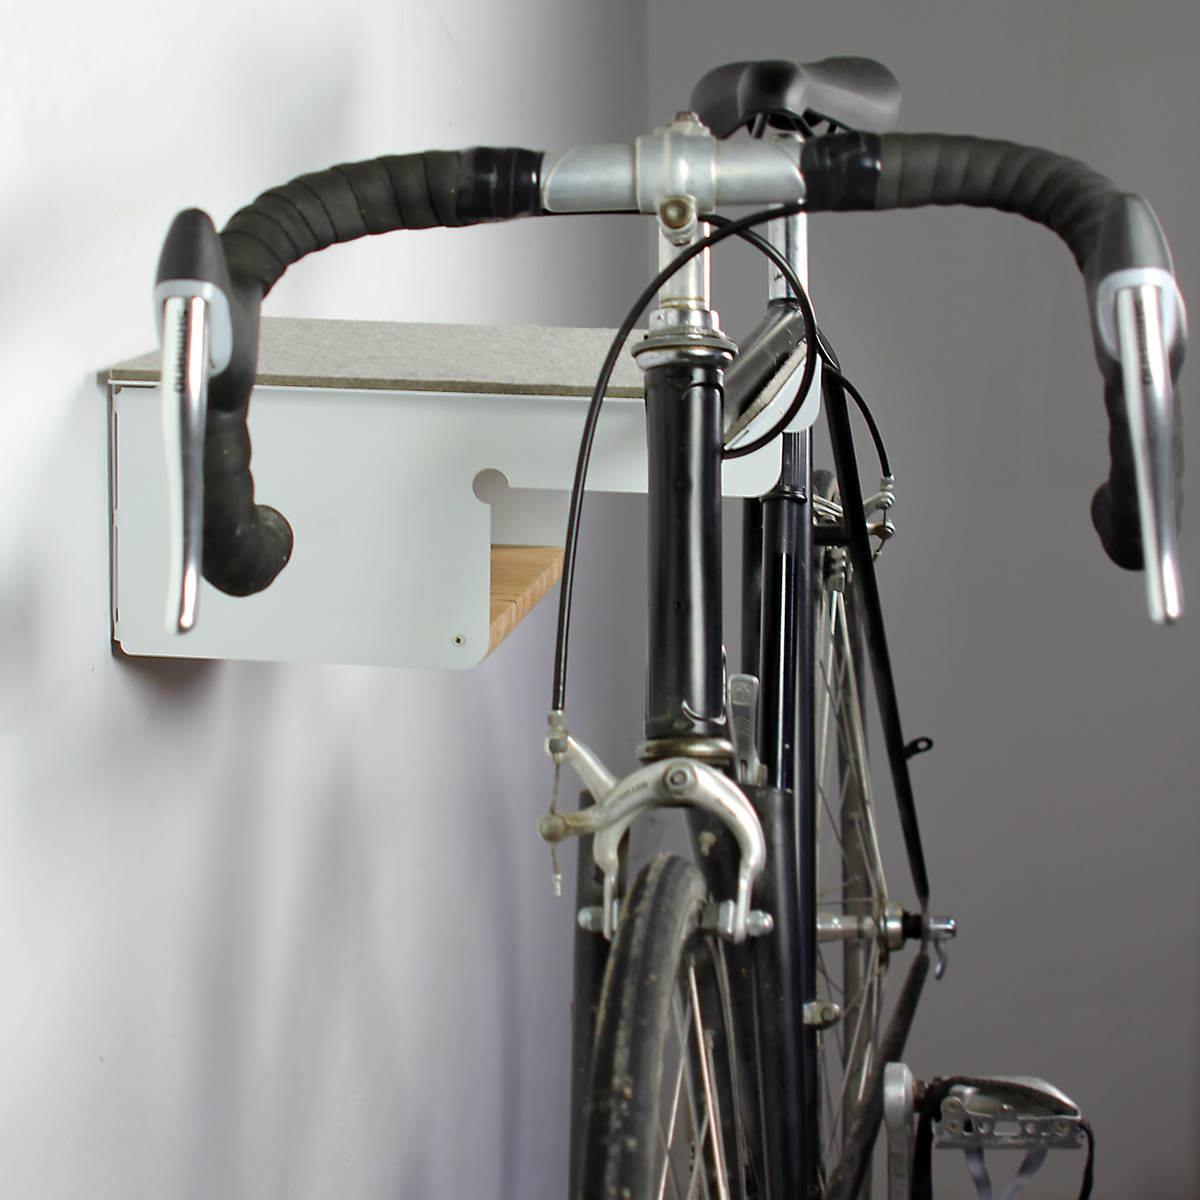 Wall holder for racing bicycles